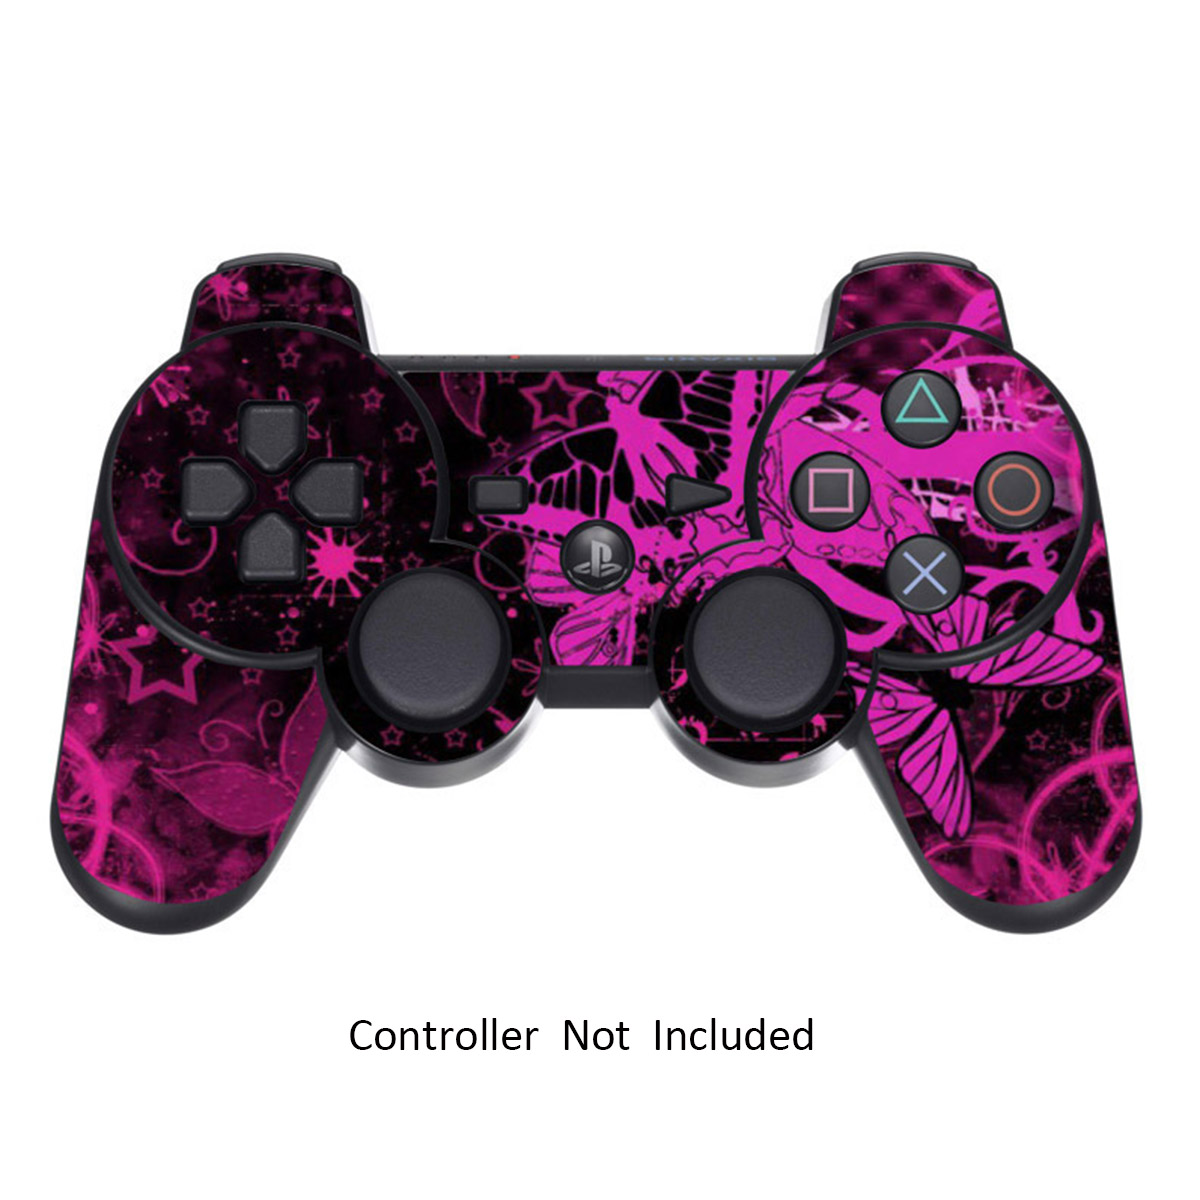 Skin Stickers for Playstation 3 Controller - Vinyl Sticker for DualShock 3 Wireless Game PS3 Sixaxis Controllers - Protectors Sticker Controller Decal Pink Butterfly